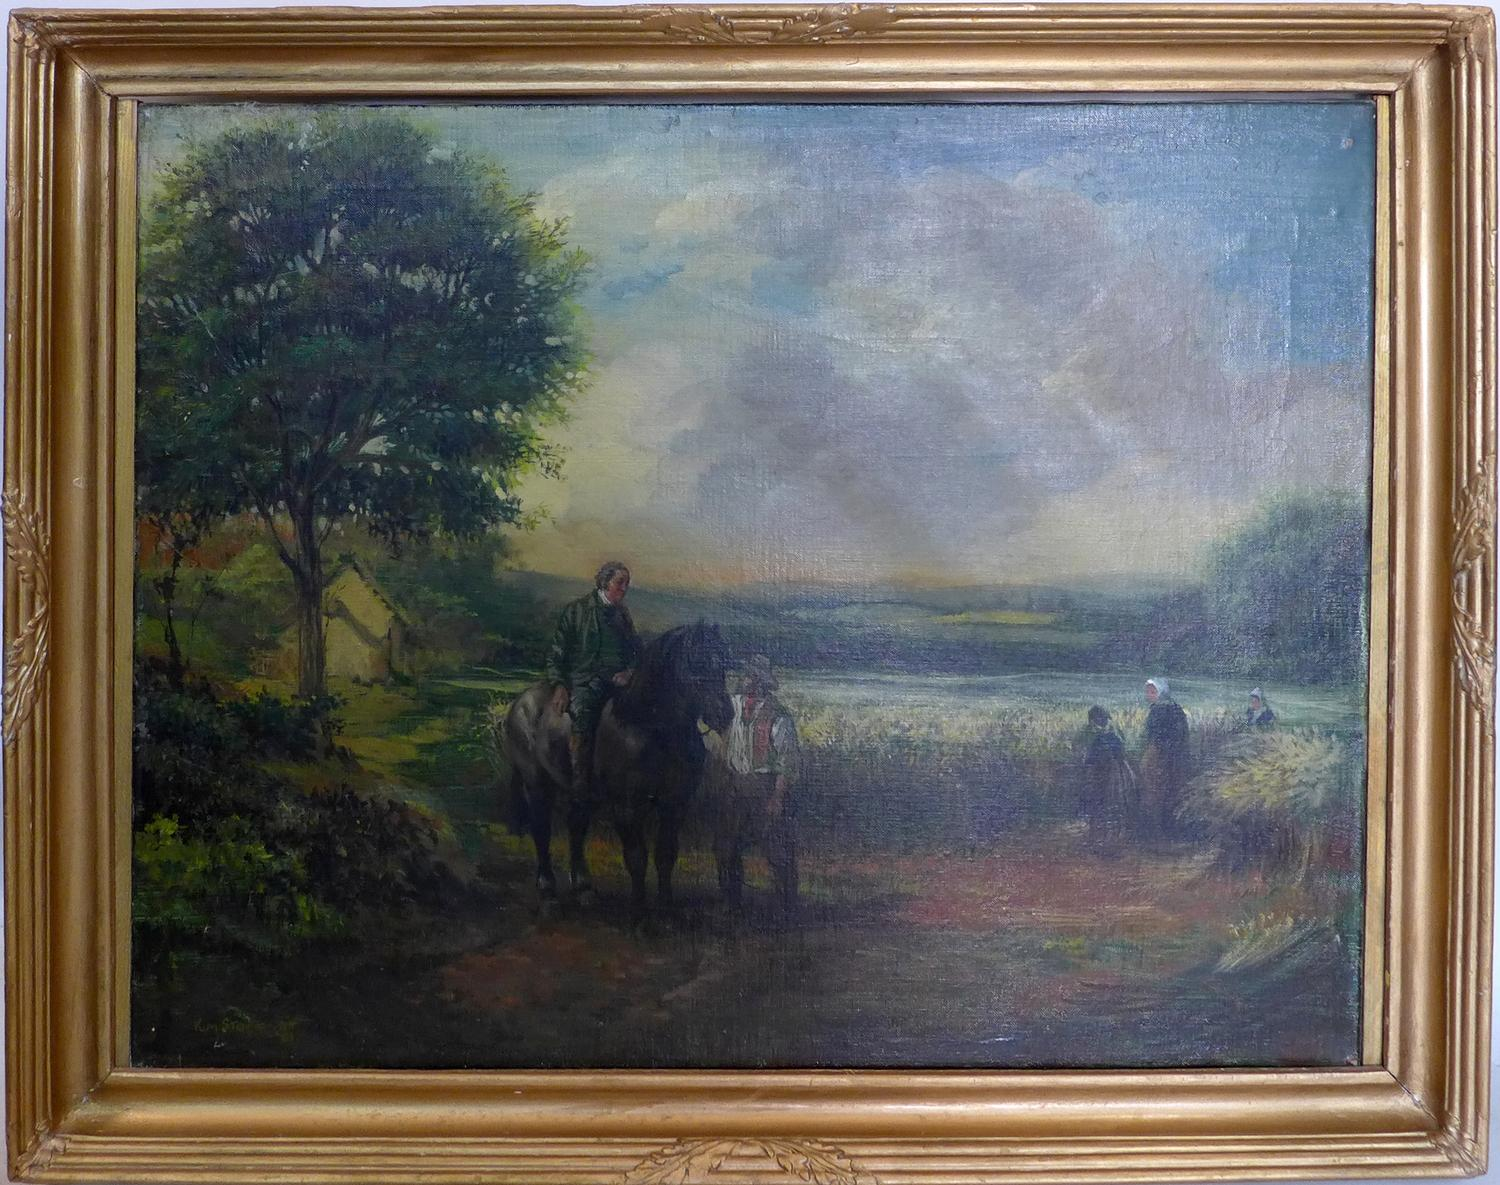 Lot 377 - A 20th century rural scene oil on canvas, in gilt frame and signed, 51 x 64cm